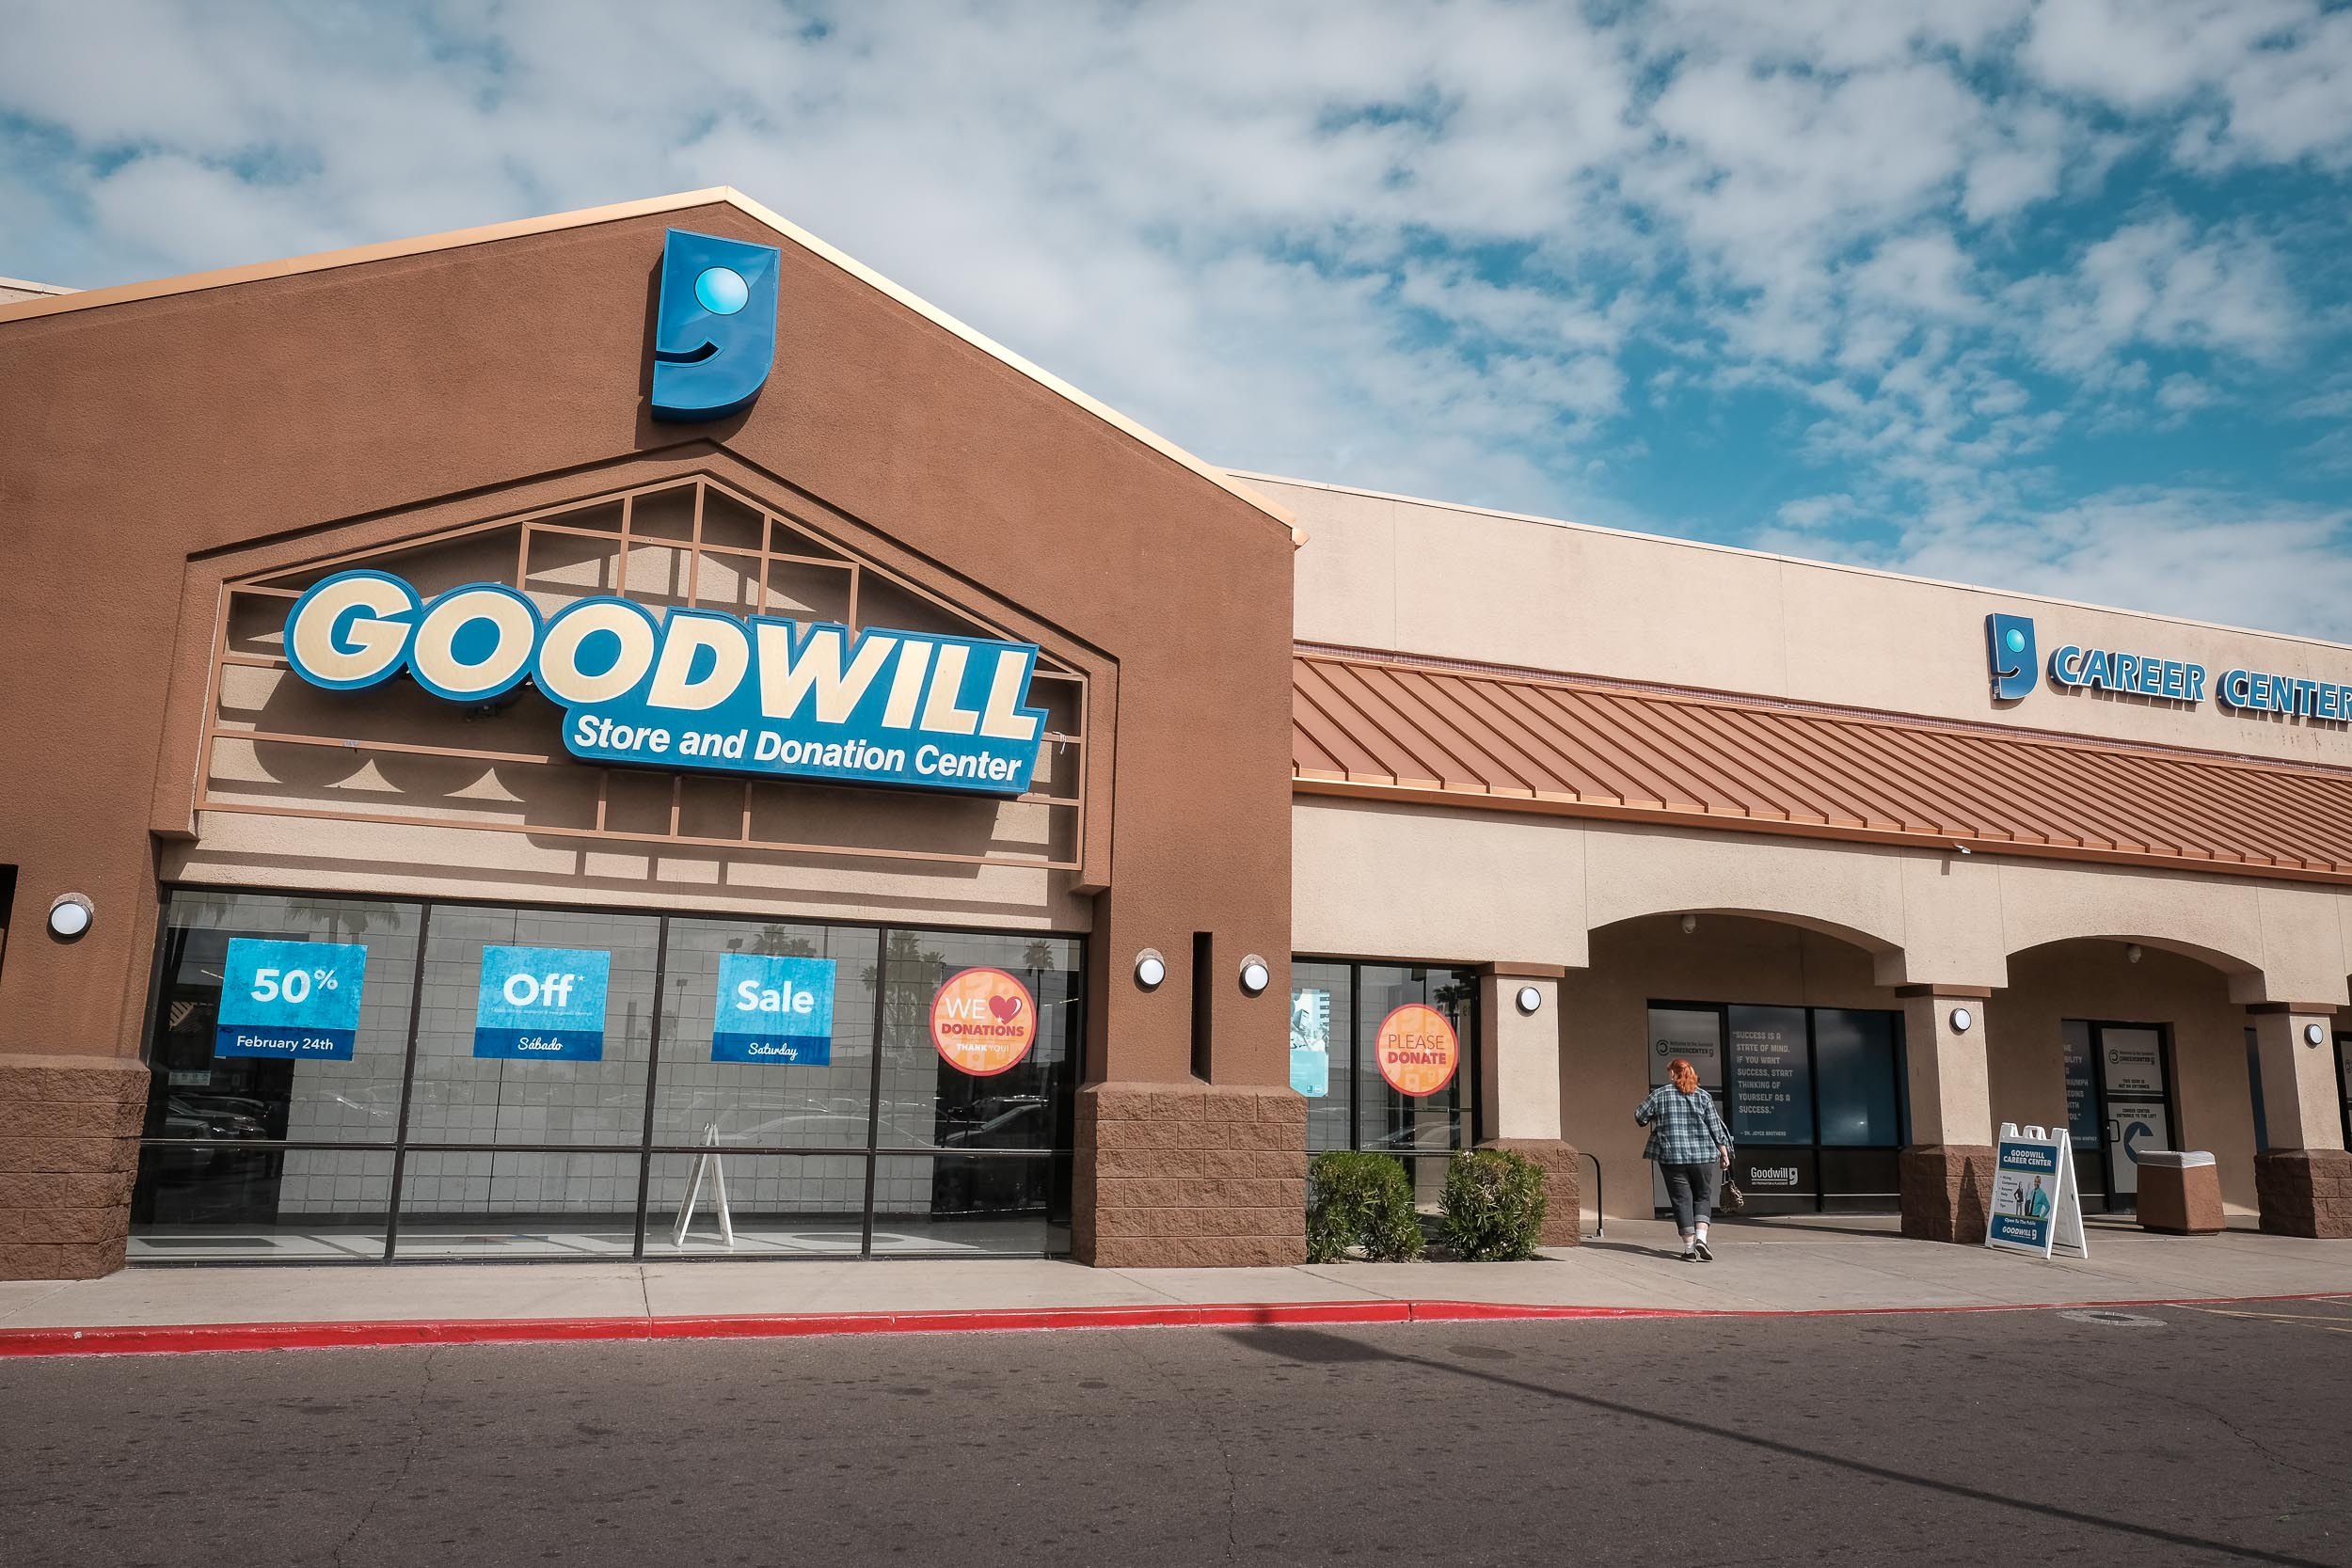 Jenny arrives at one of her favorite Goodwill stores in Phoenix.